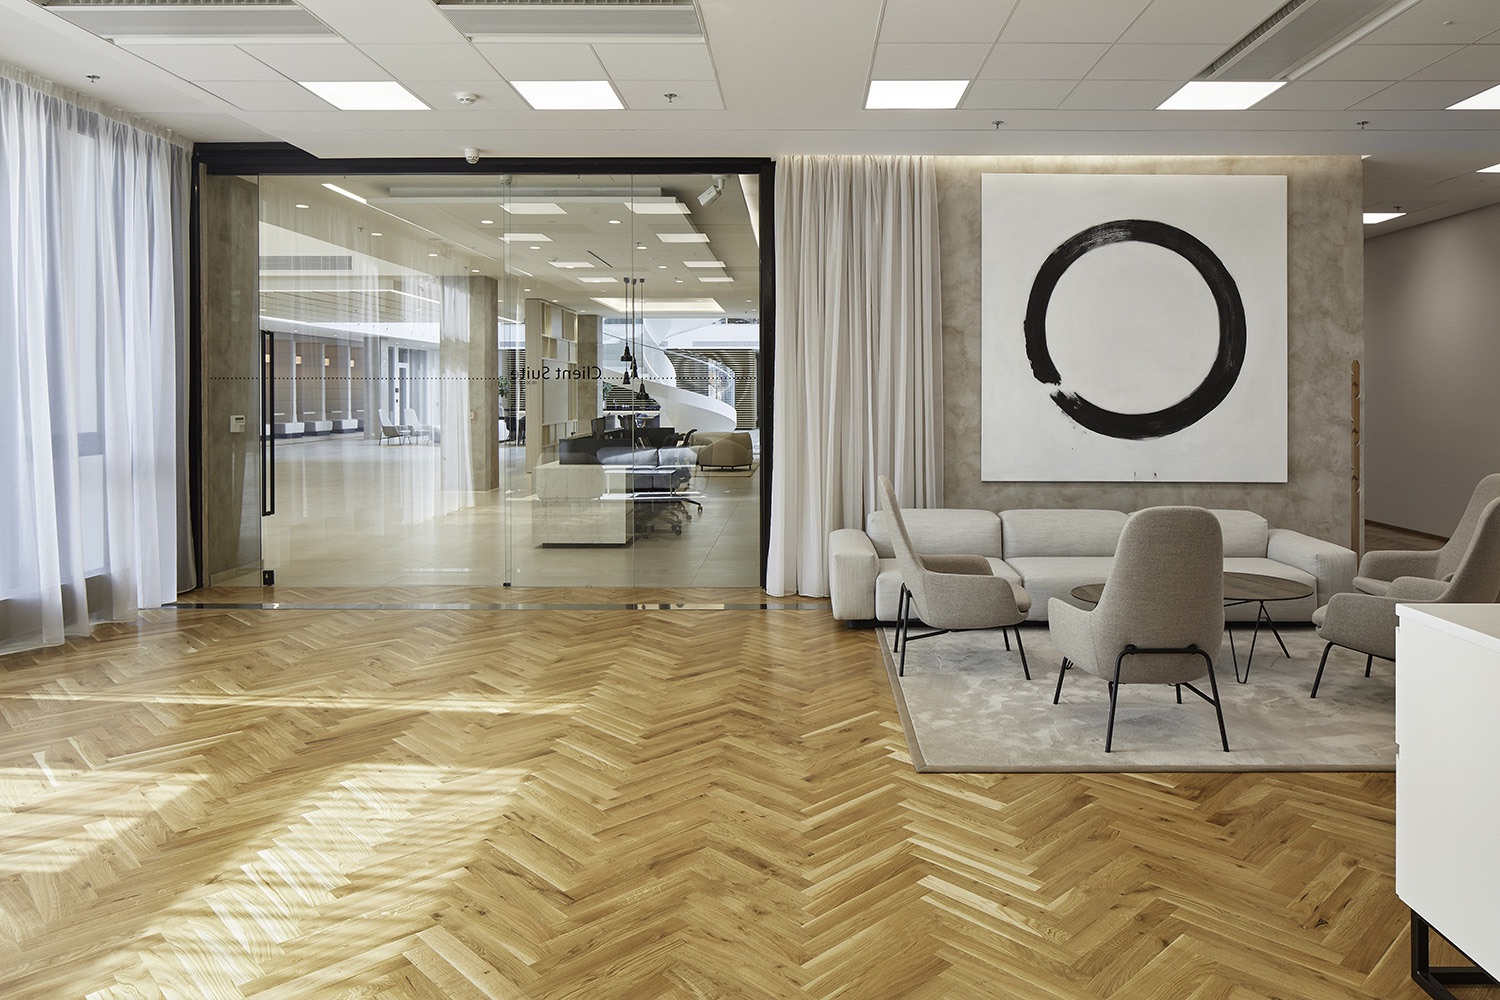 deloitte-prague-office-3